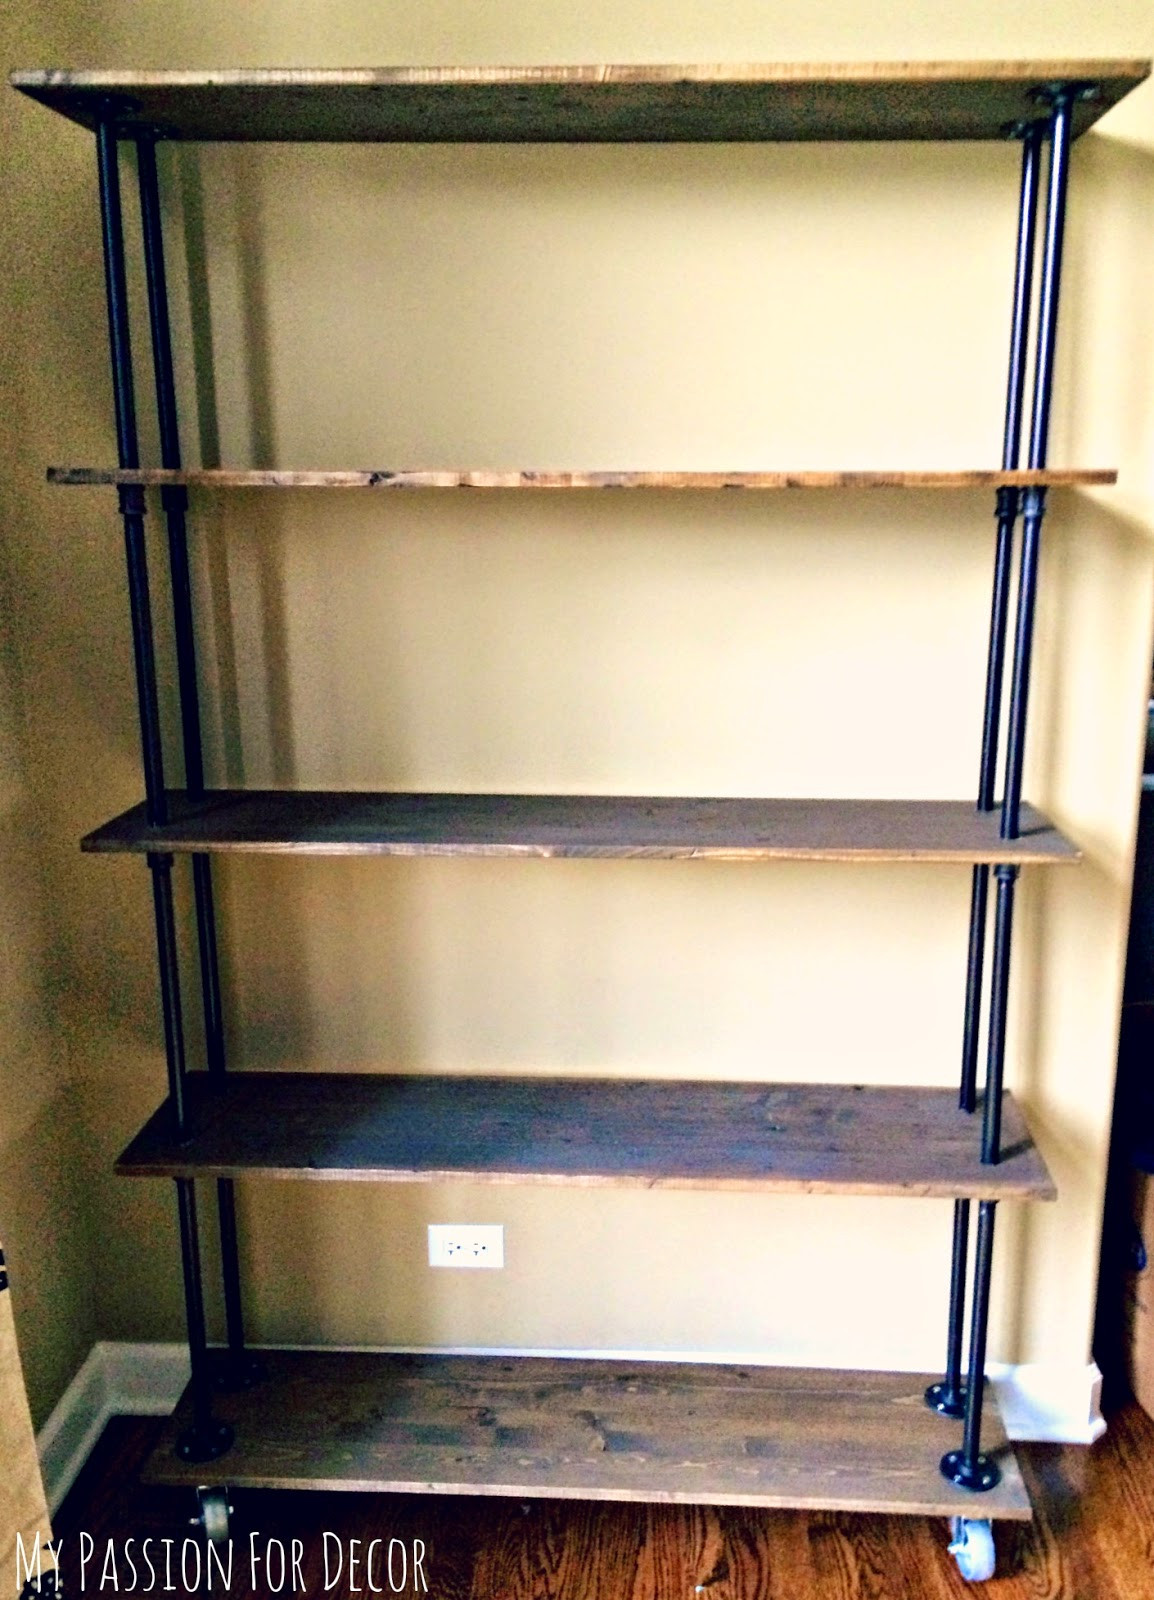 Best ideas about Industrial Pipe Shelving DIY . Save or Pin My Passion For Decor DIY Industrial Pipe and Wood Shelving Now.